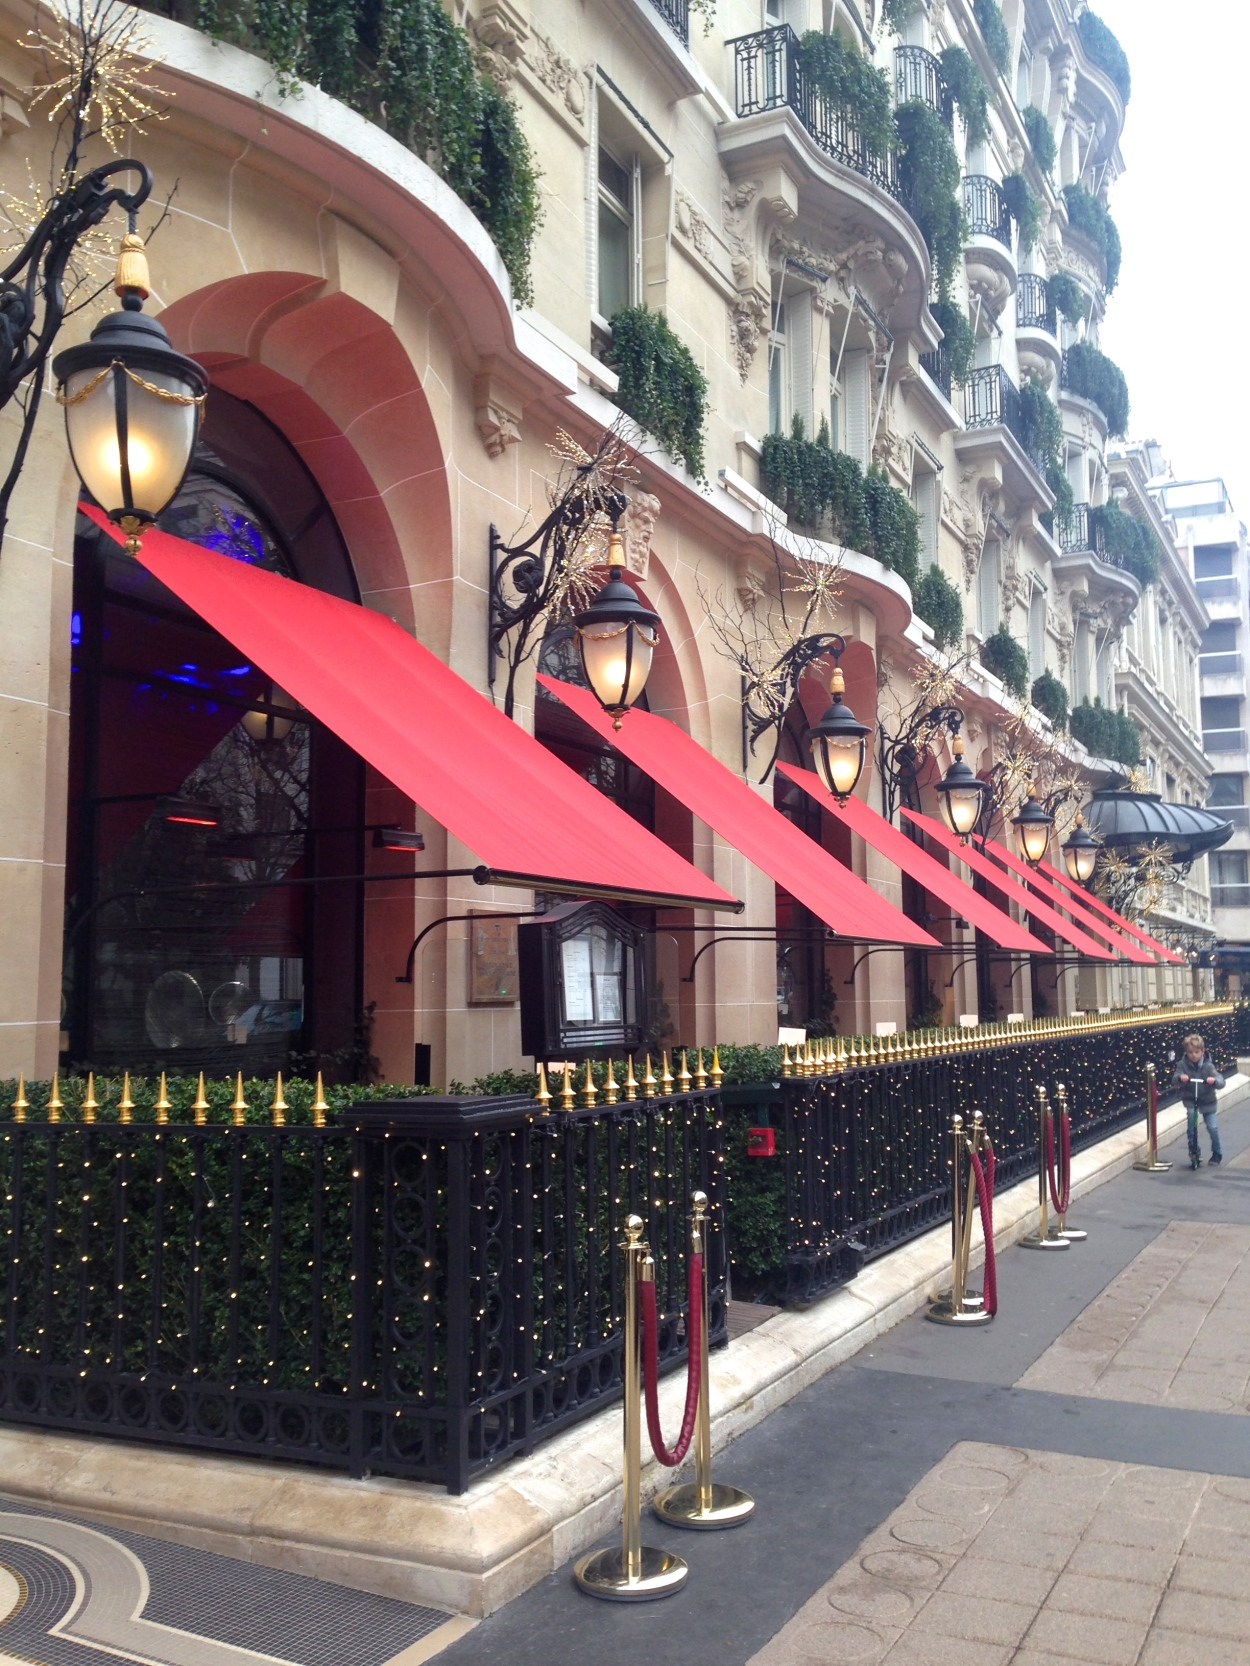 The iconic red awnings of the Hôtel Plaza Athénée